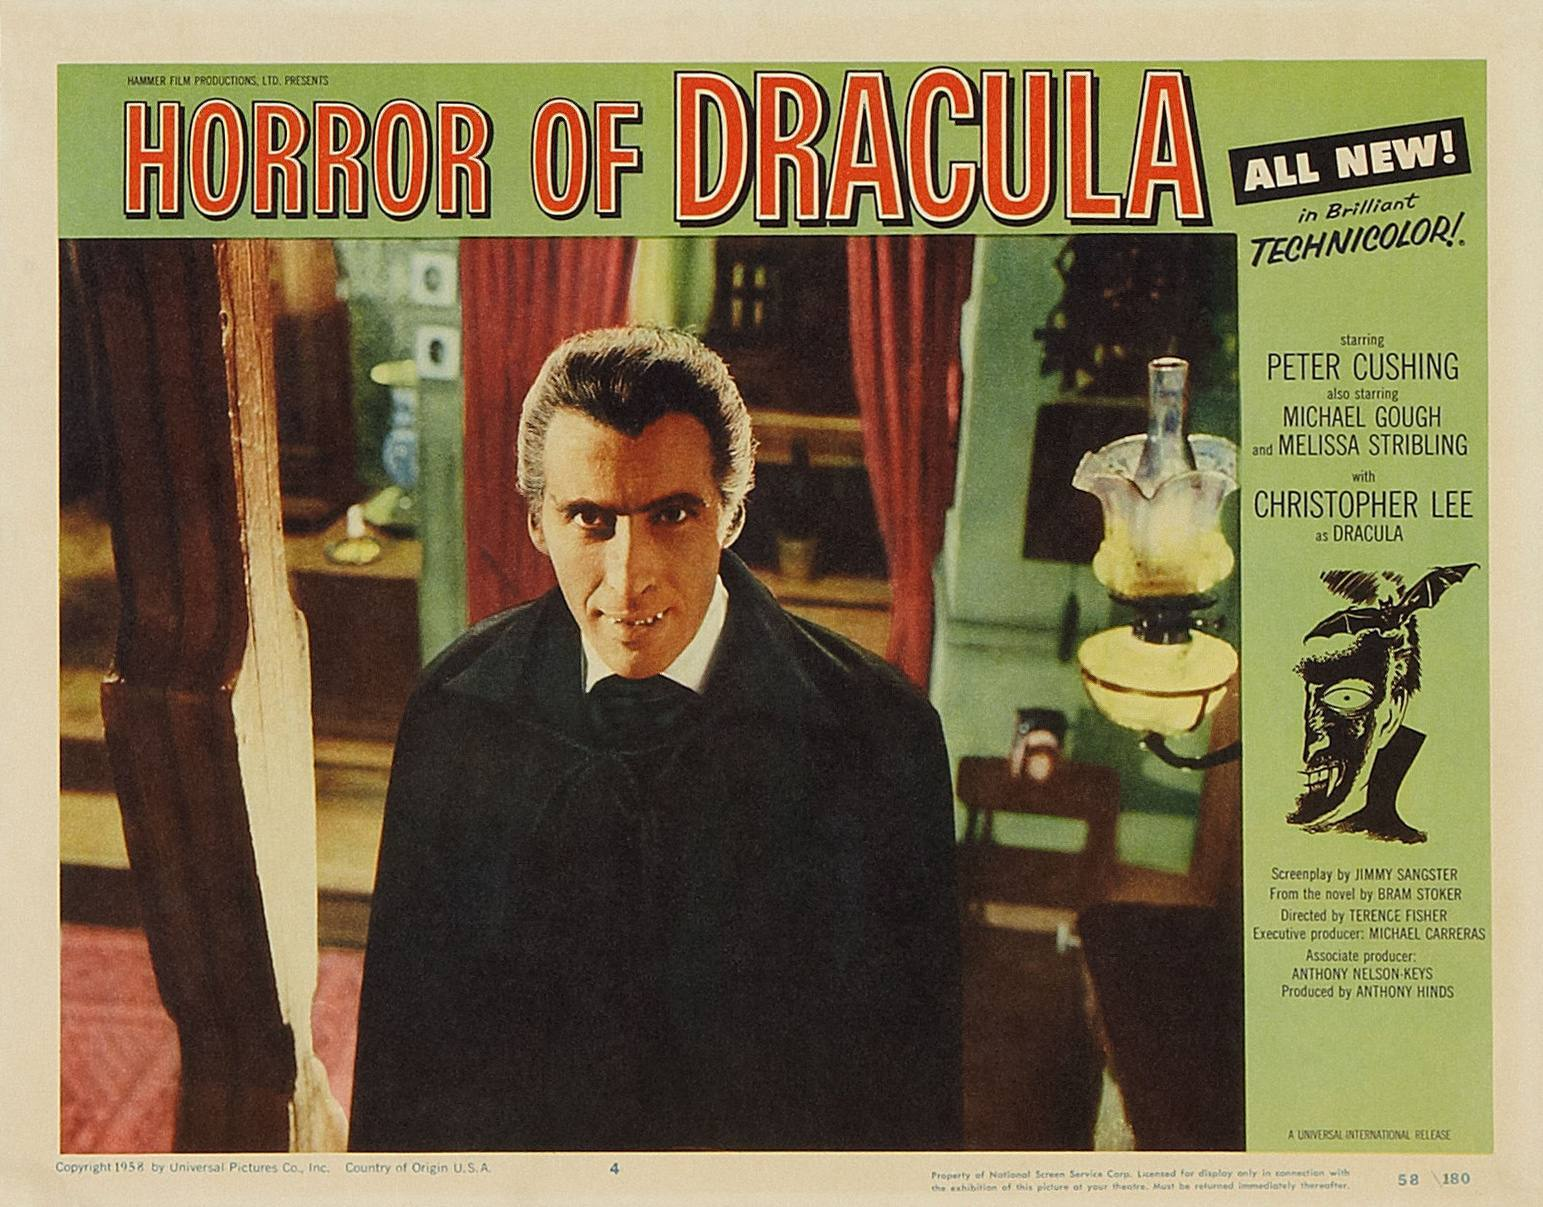 Horror-of-Dracula-green-lobby-card